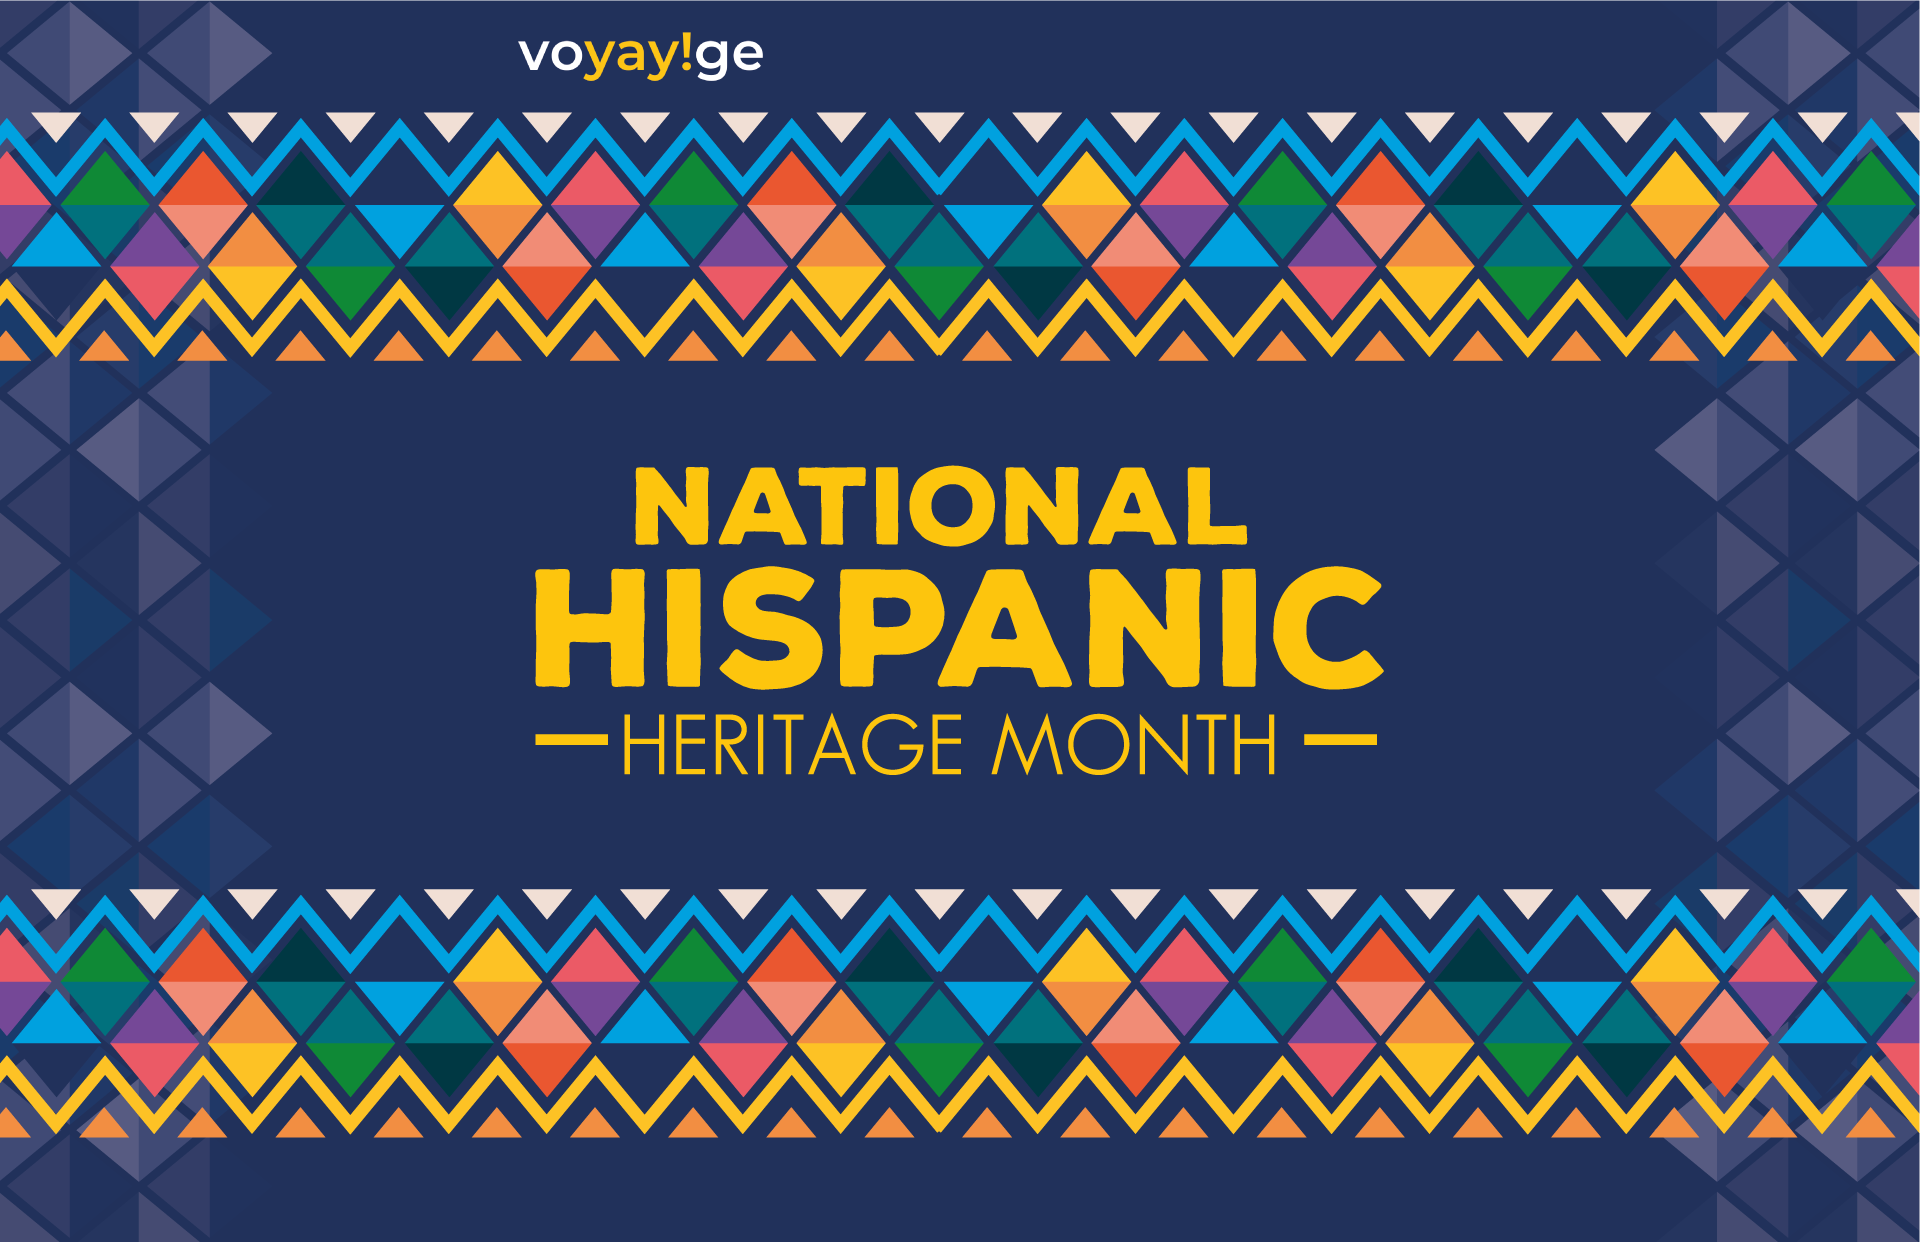 Celebrate Hispanic Heritage Month by Visiting These Historic US Destinations